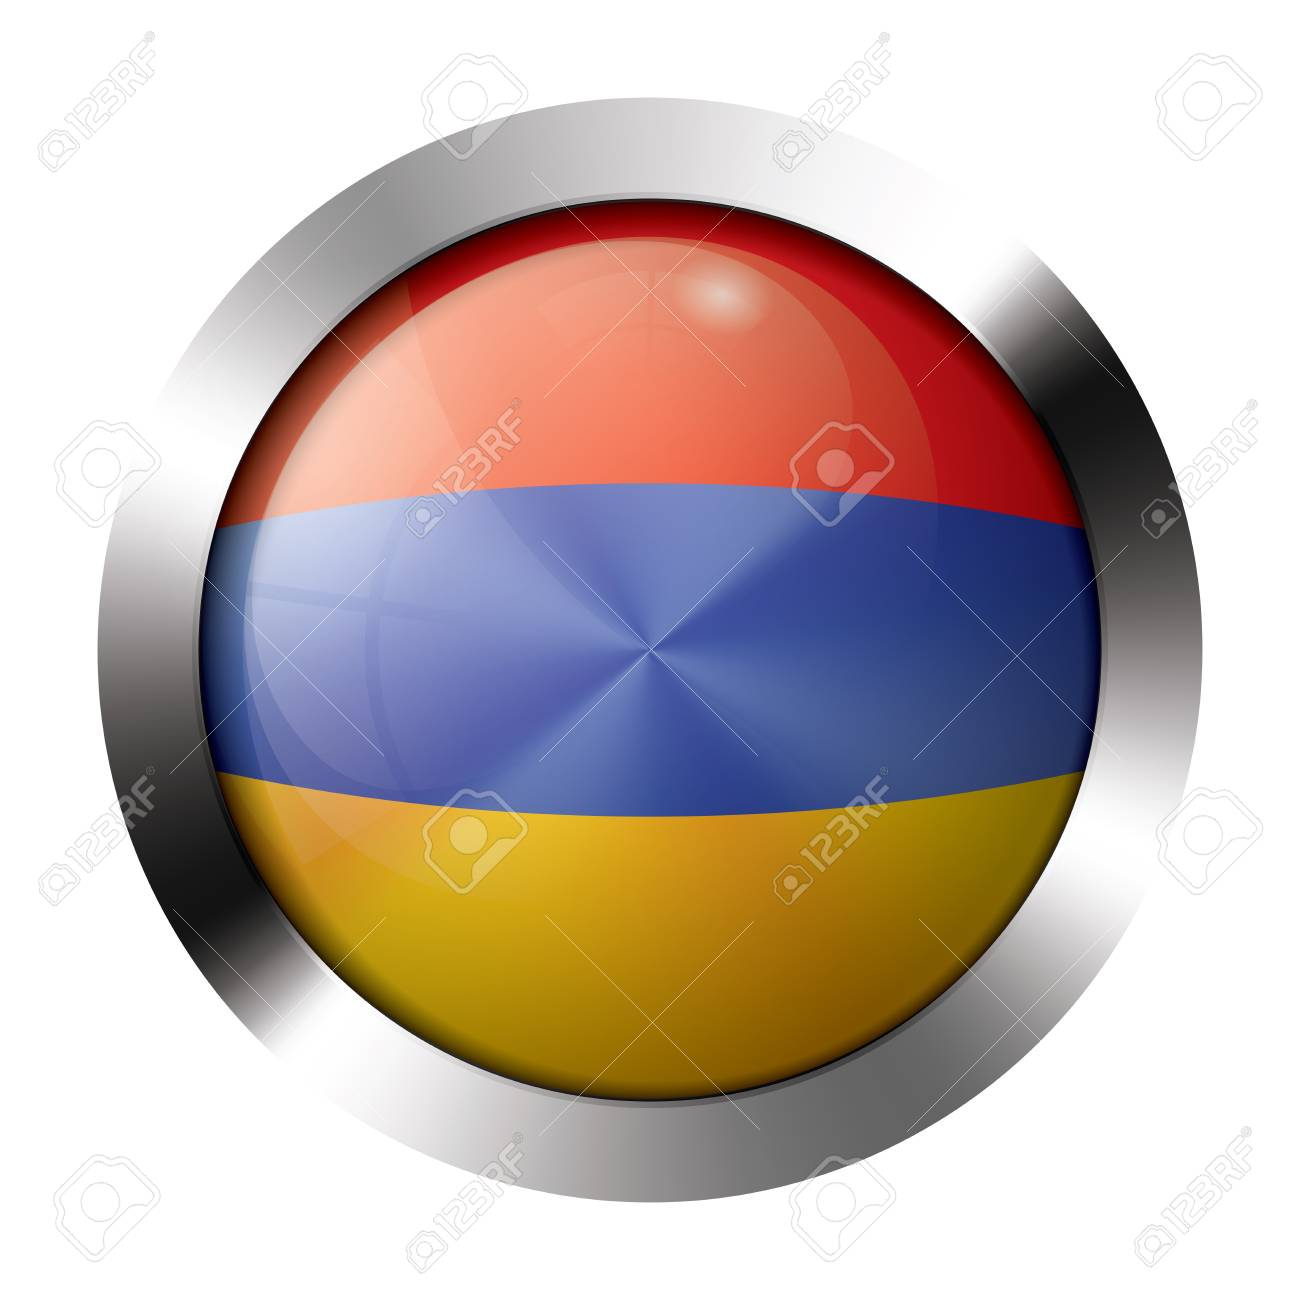 Round shiny metal button with flag of armenia europe. Stock Vector - 15624464